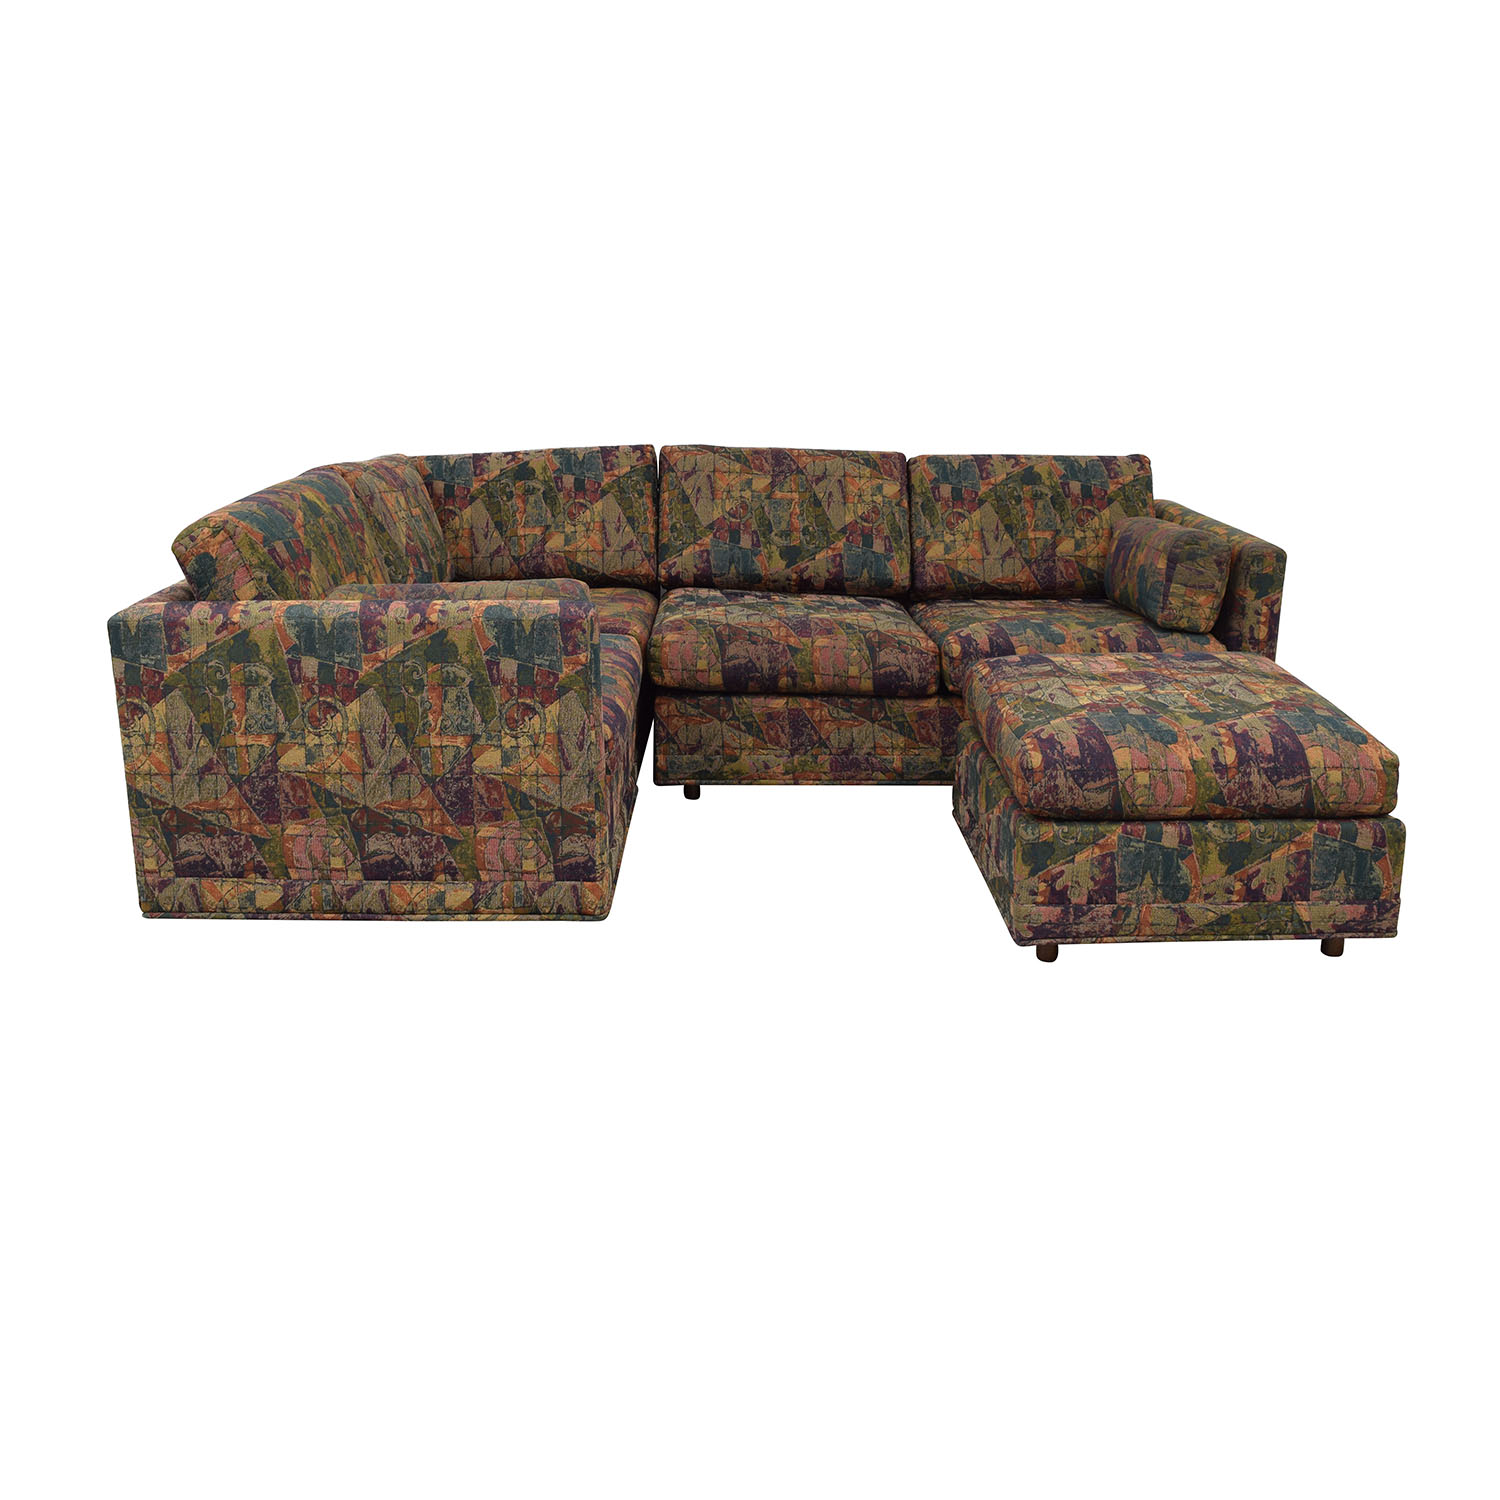 Multi-Colored Sectional With Ottoman / Sofas